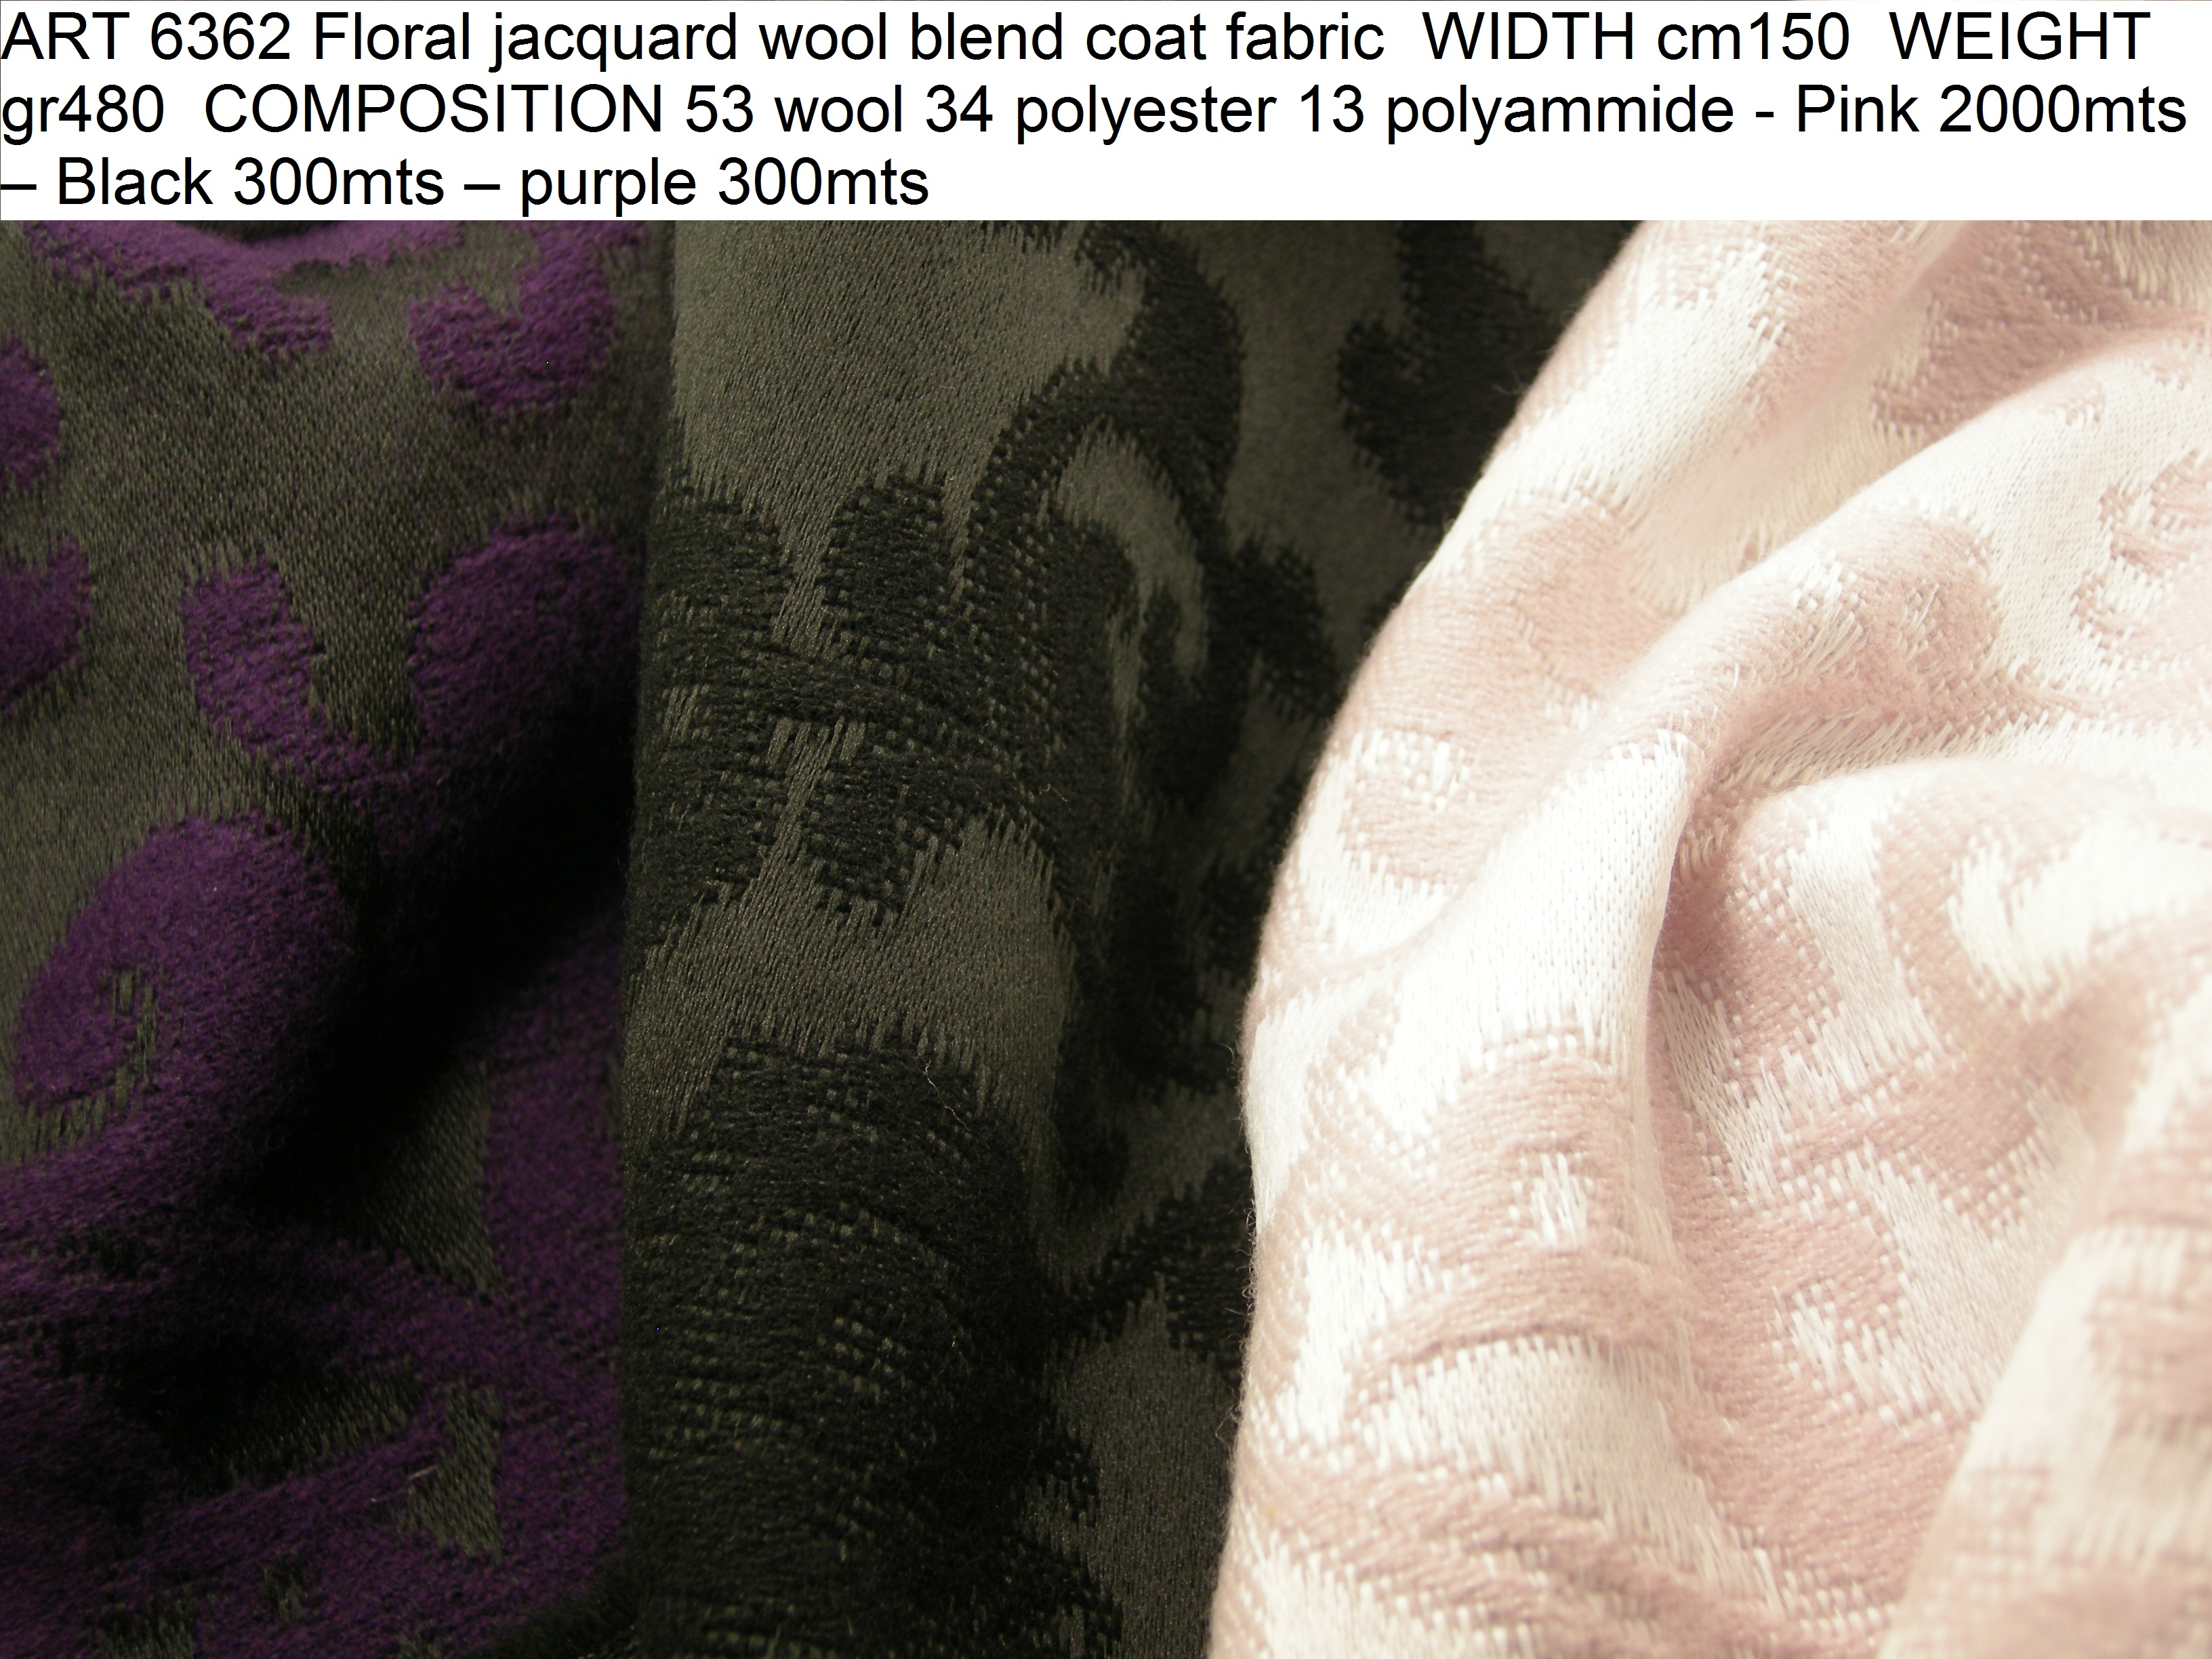 ART 6362 Floral jacquard wool blend coat fabric WIDTH cm150 WEIGHT gr480 COMPOSITION 53 wool 34 polyester 13 polyammide - Pink 2000mts – Black 300mts – purple 300mts